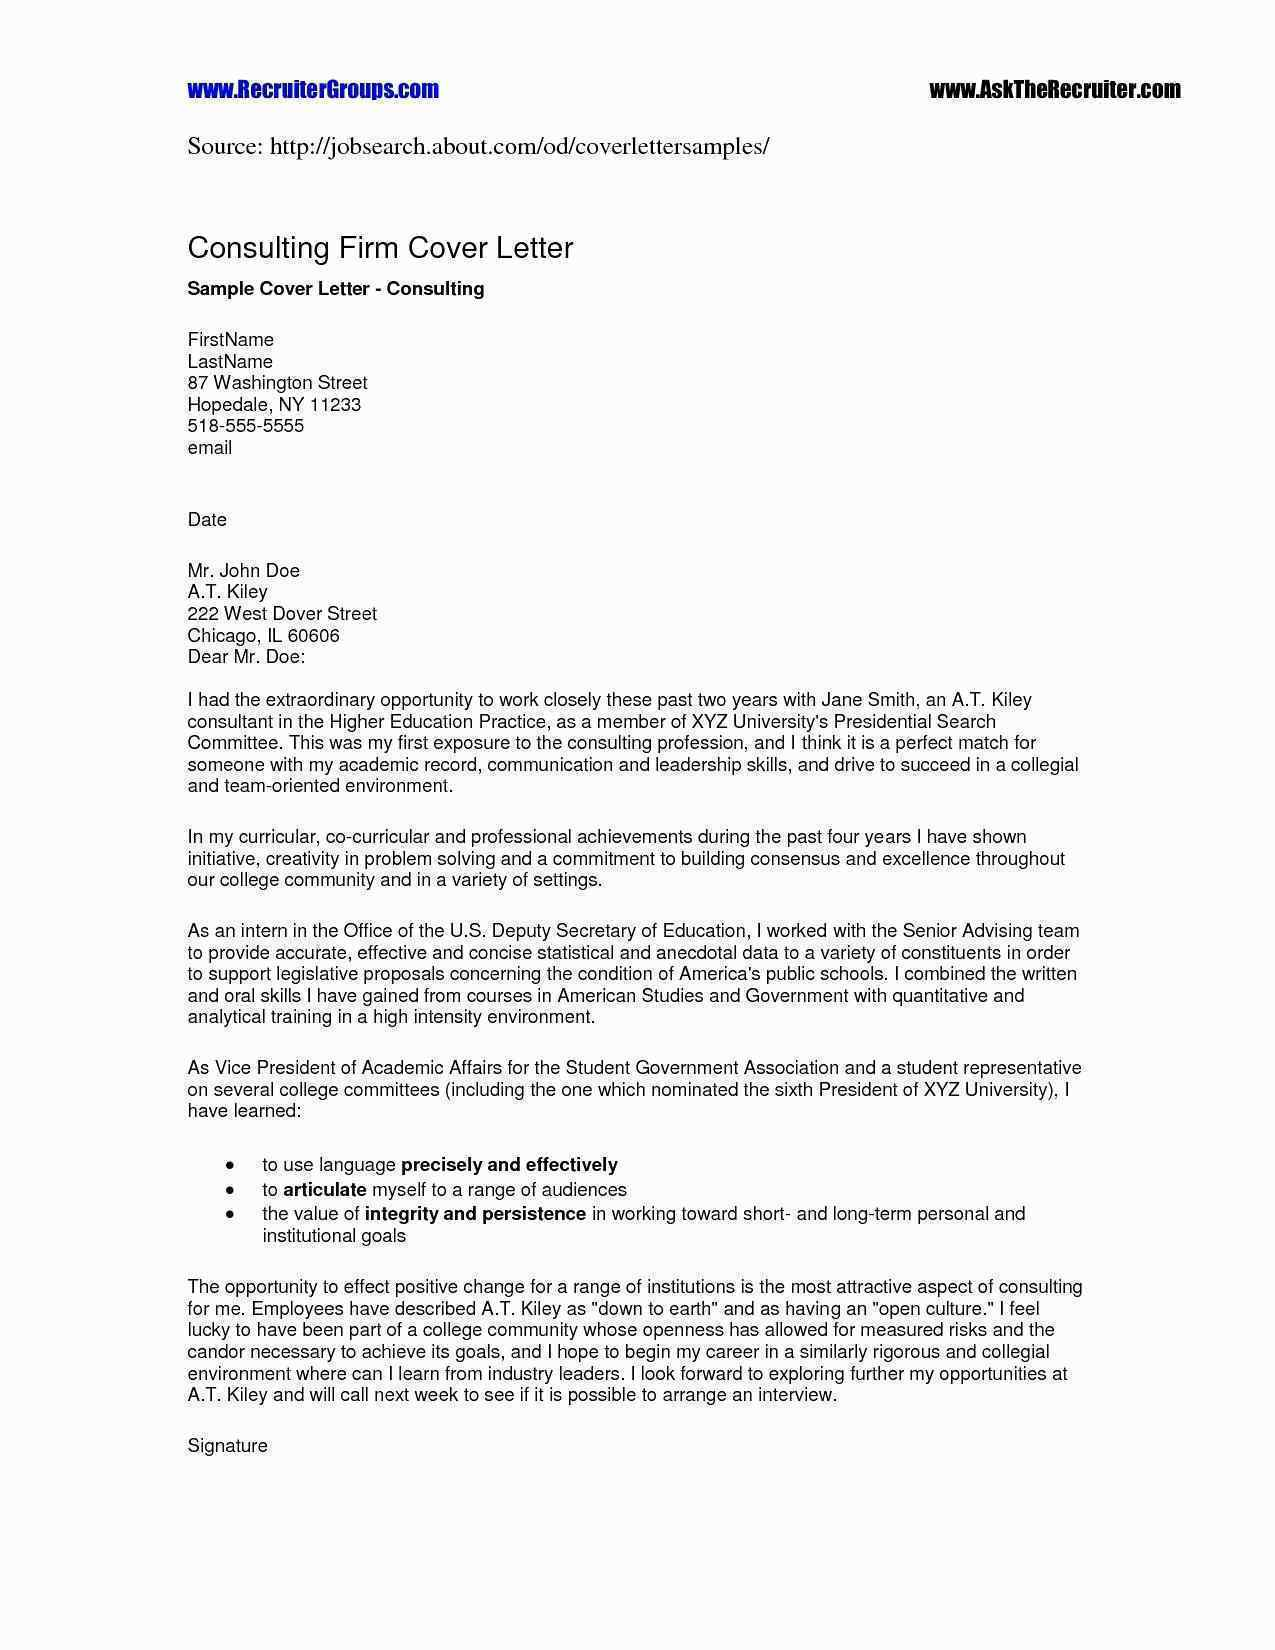 Car Sale Document Fresh Car Sale Document Template Lovely Auto Reply Email Template Fresh